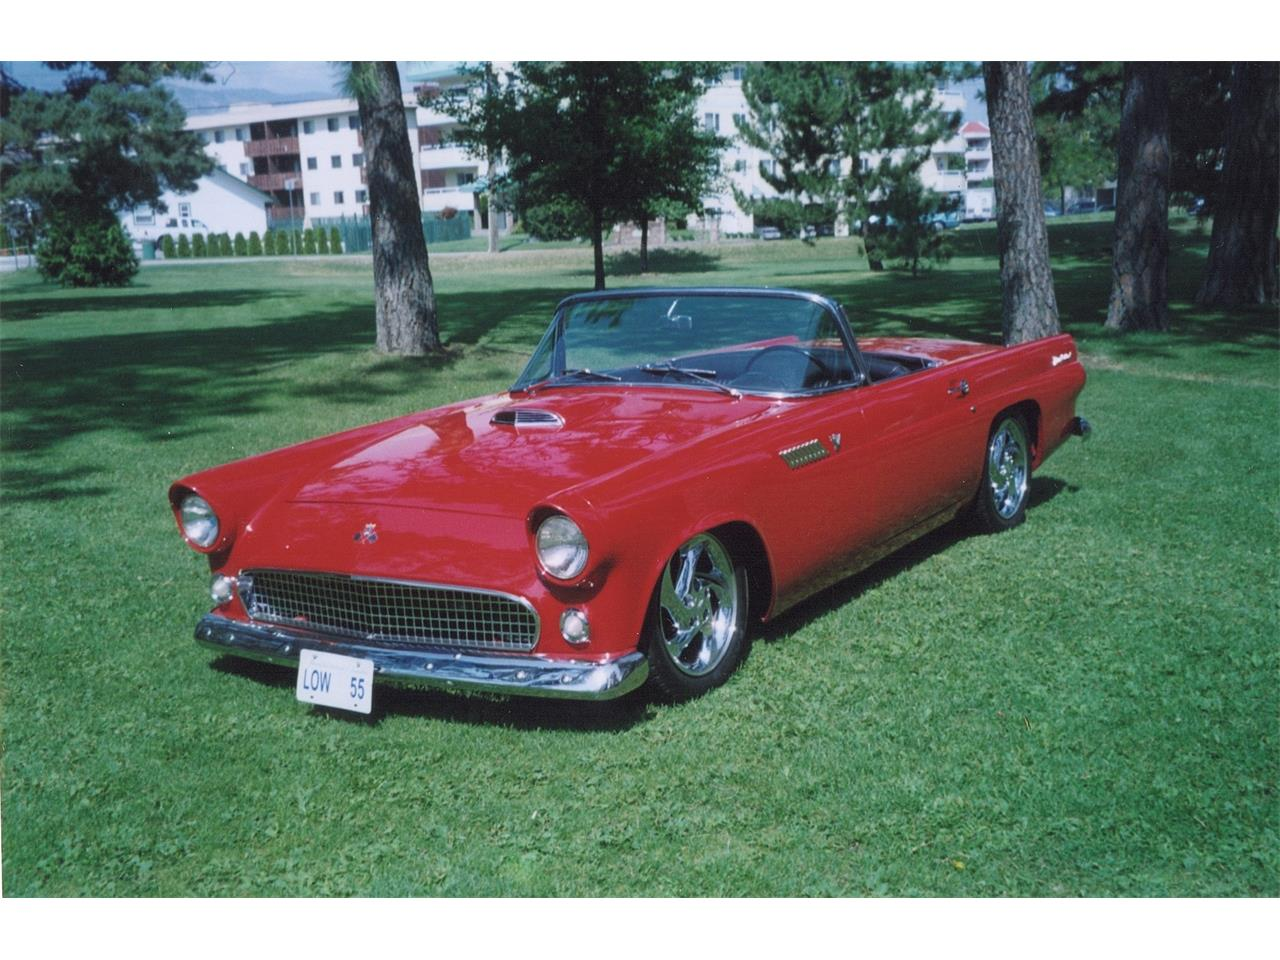 Large Picture of 1955 Ford Thunderbird - $39,500.00 - GI3T